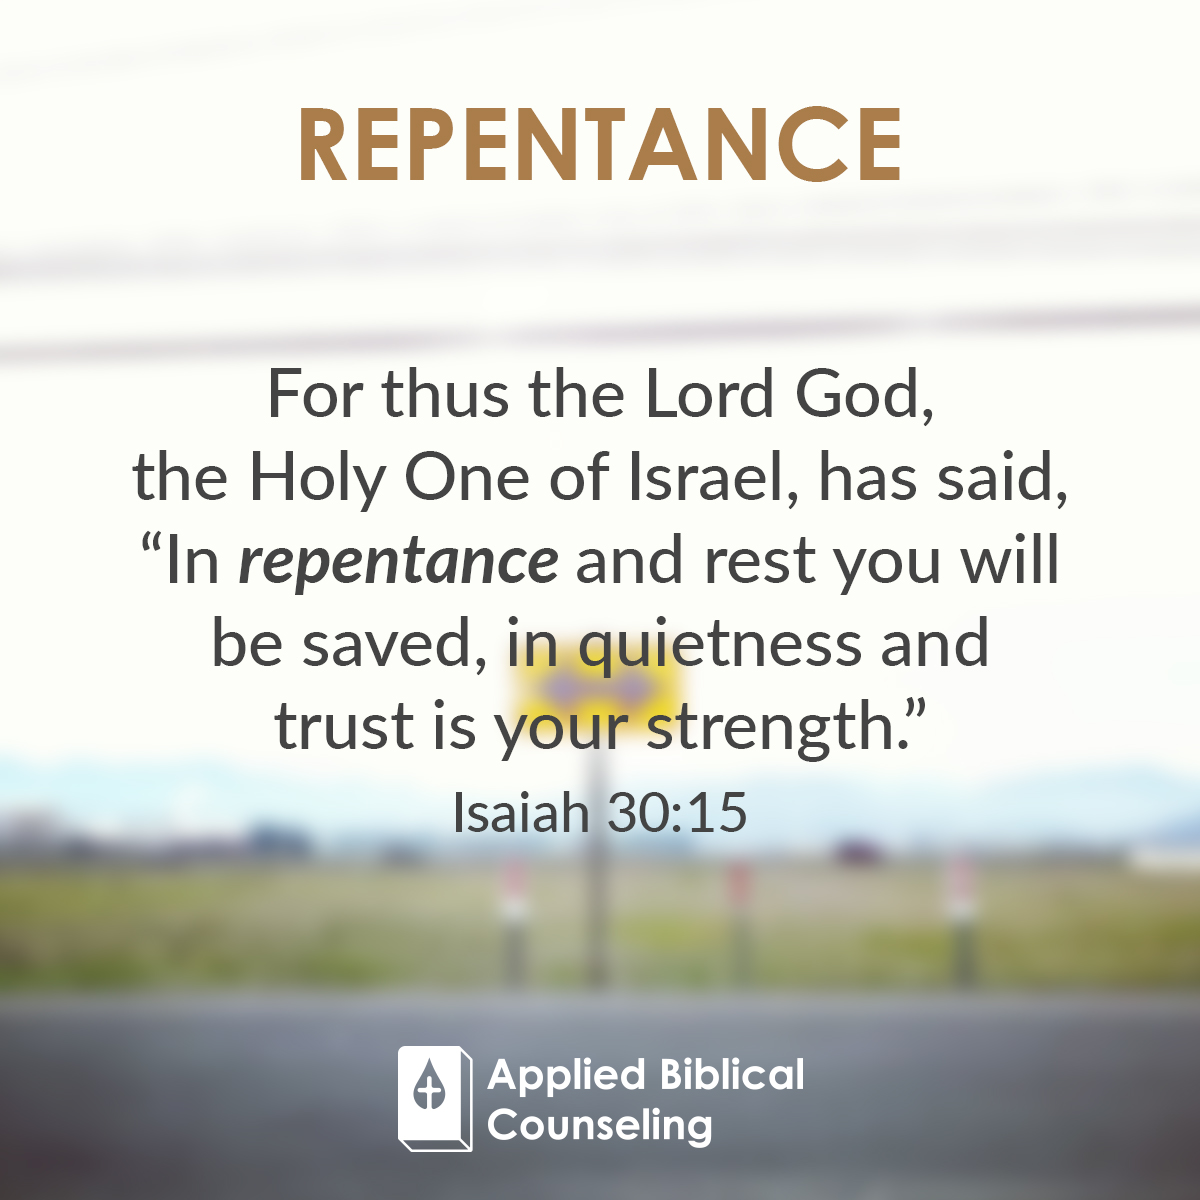 Applied Biblical Counseling Facebook w19 Repentance 2